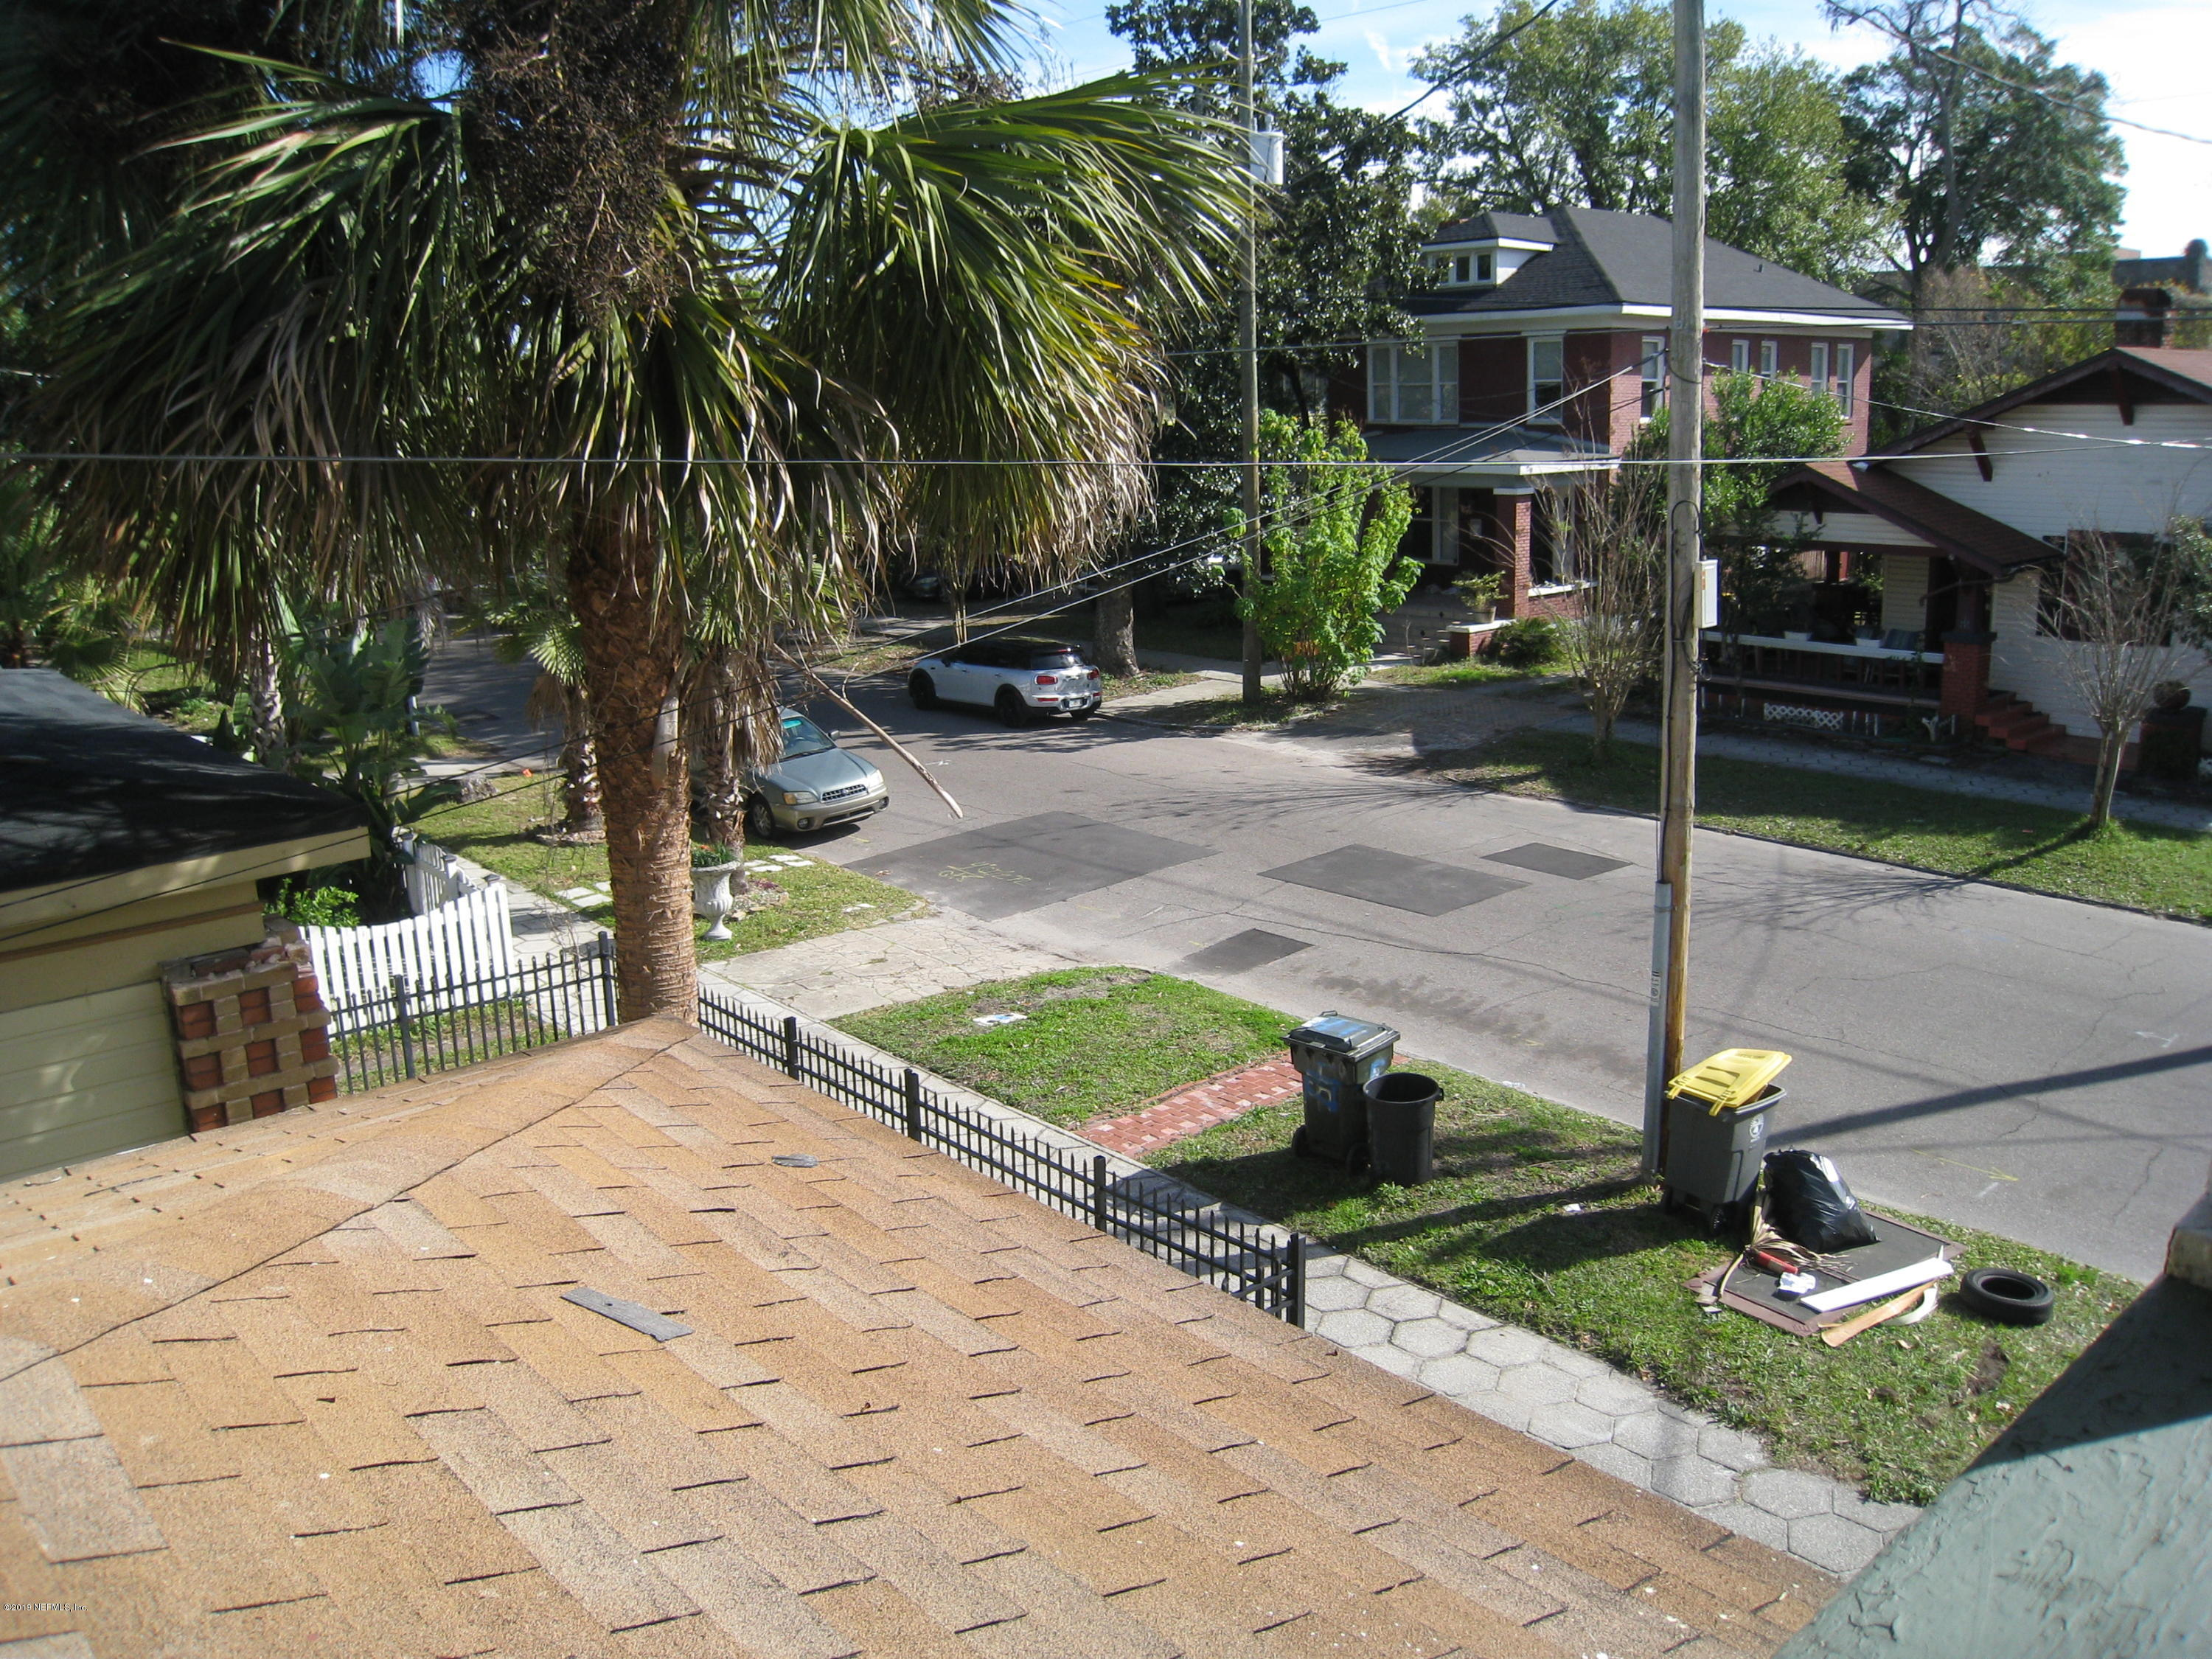 45 10TH, JACKSONVILLE, FLORIDA 32206, 4 Bedrooms Bedrooms, ,4 BathroomsBathrooms,Commercial,For sale,10TH,978615